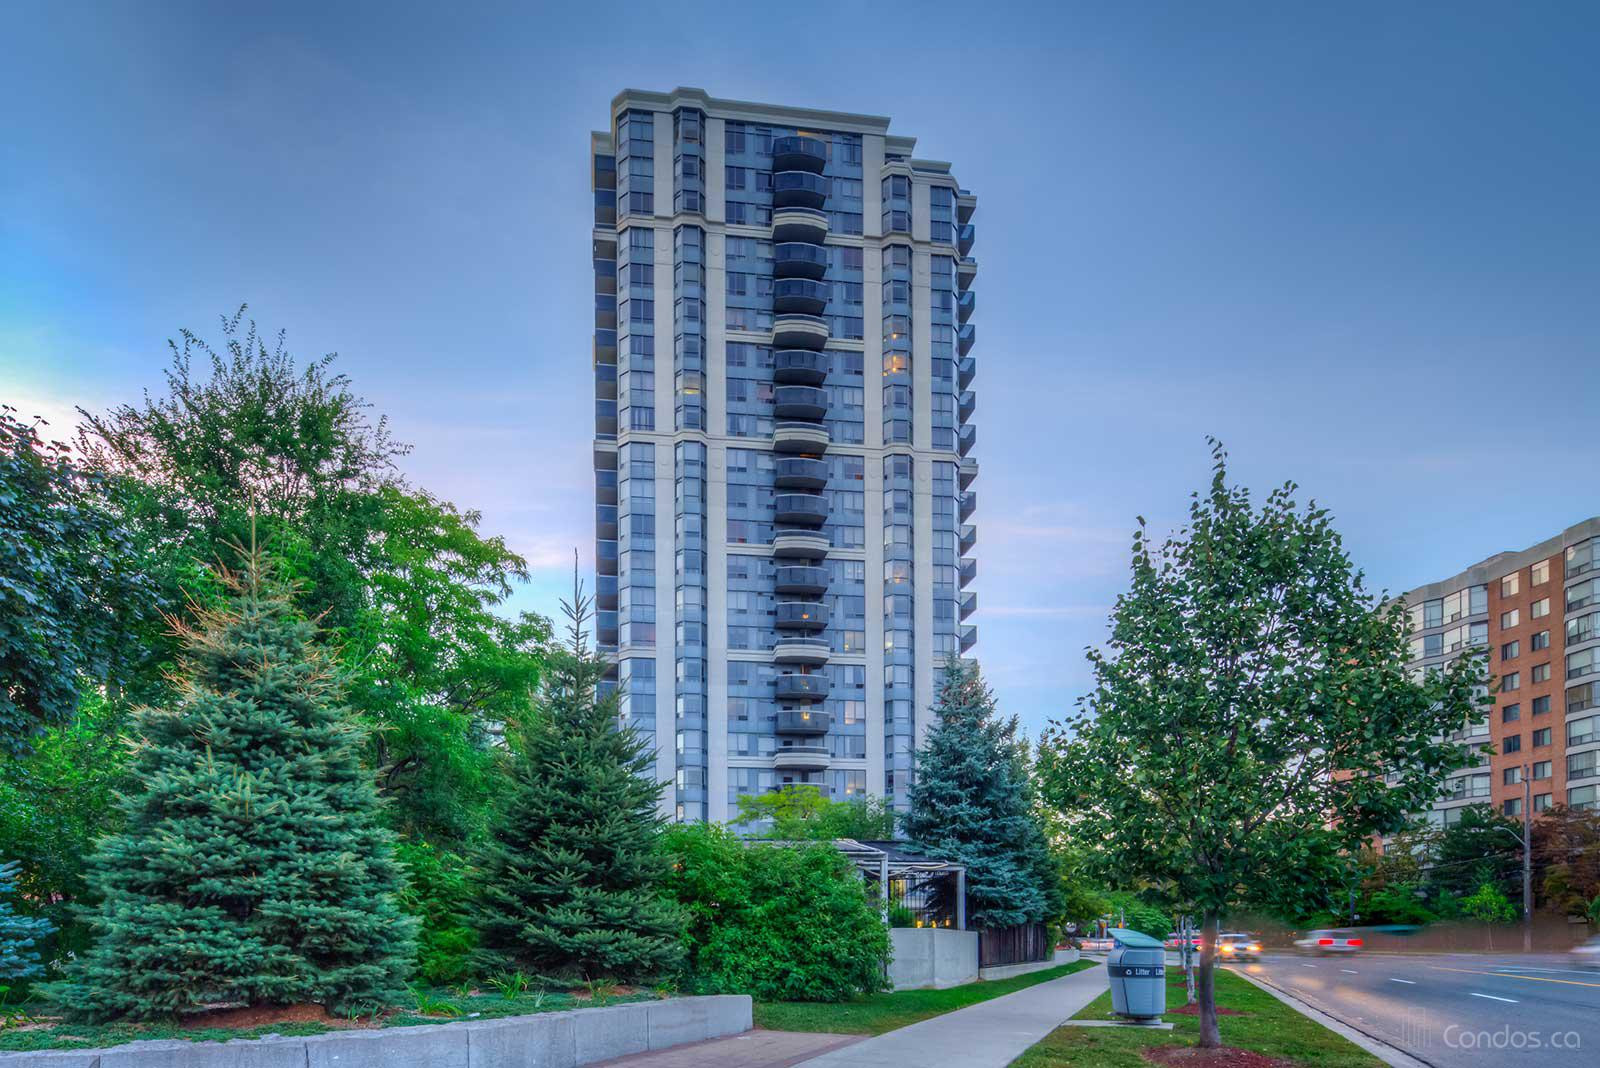 Chicago Residences at 35 Finch Ave E, Toronto 0